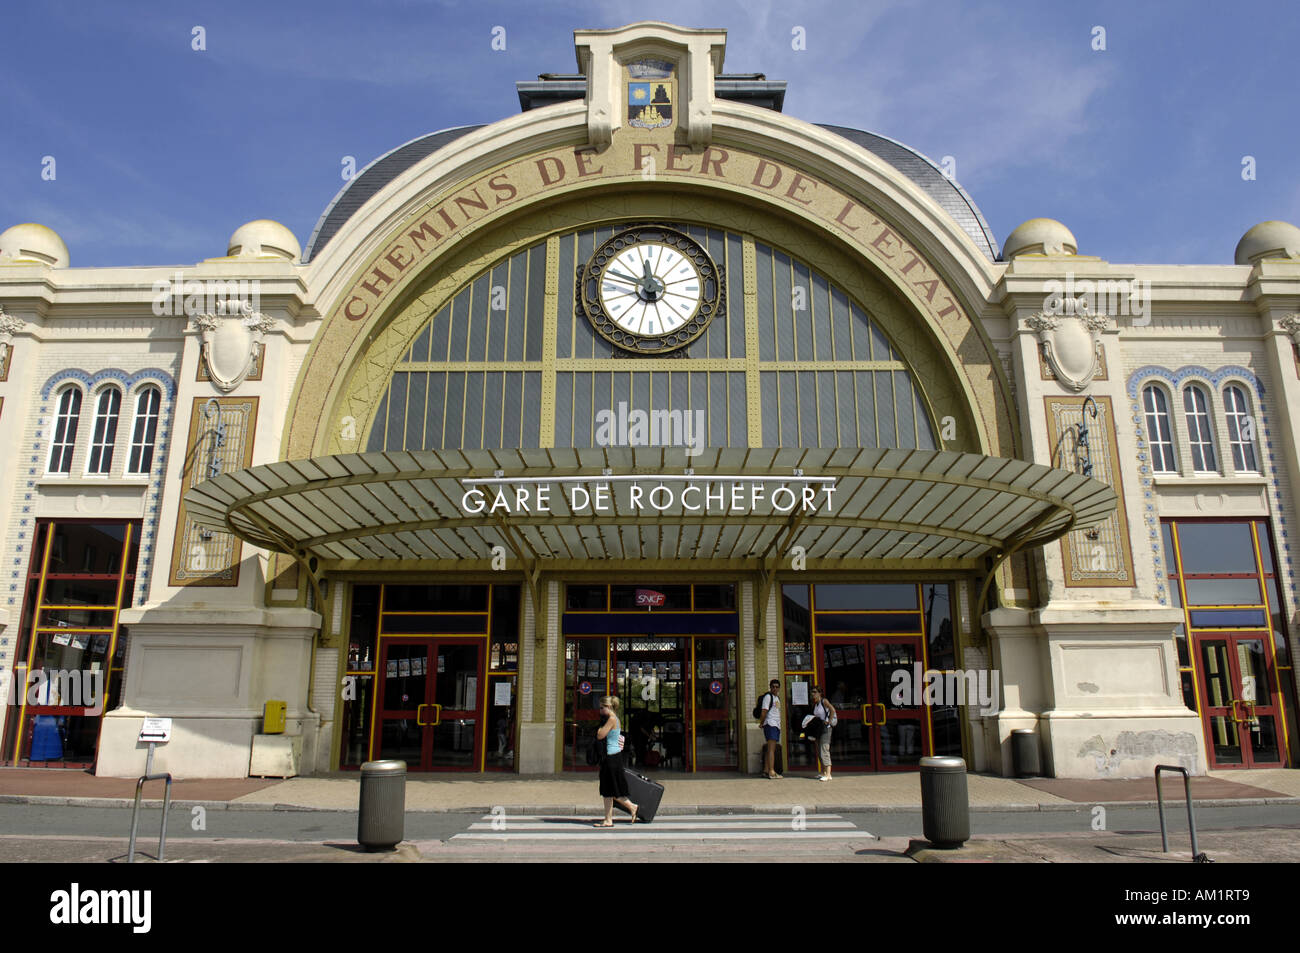 Gare De Rochefort Charente Maritime Region France French Train Stock Photo, Royalty Free Image